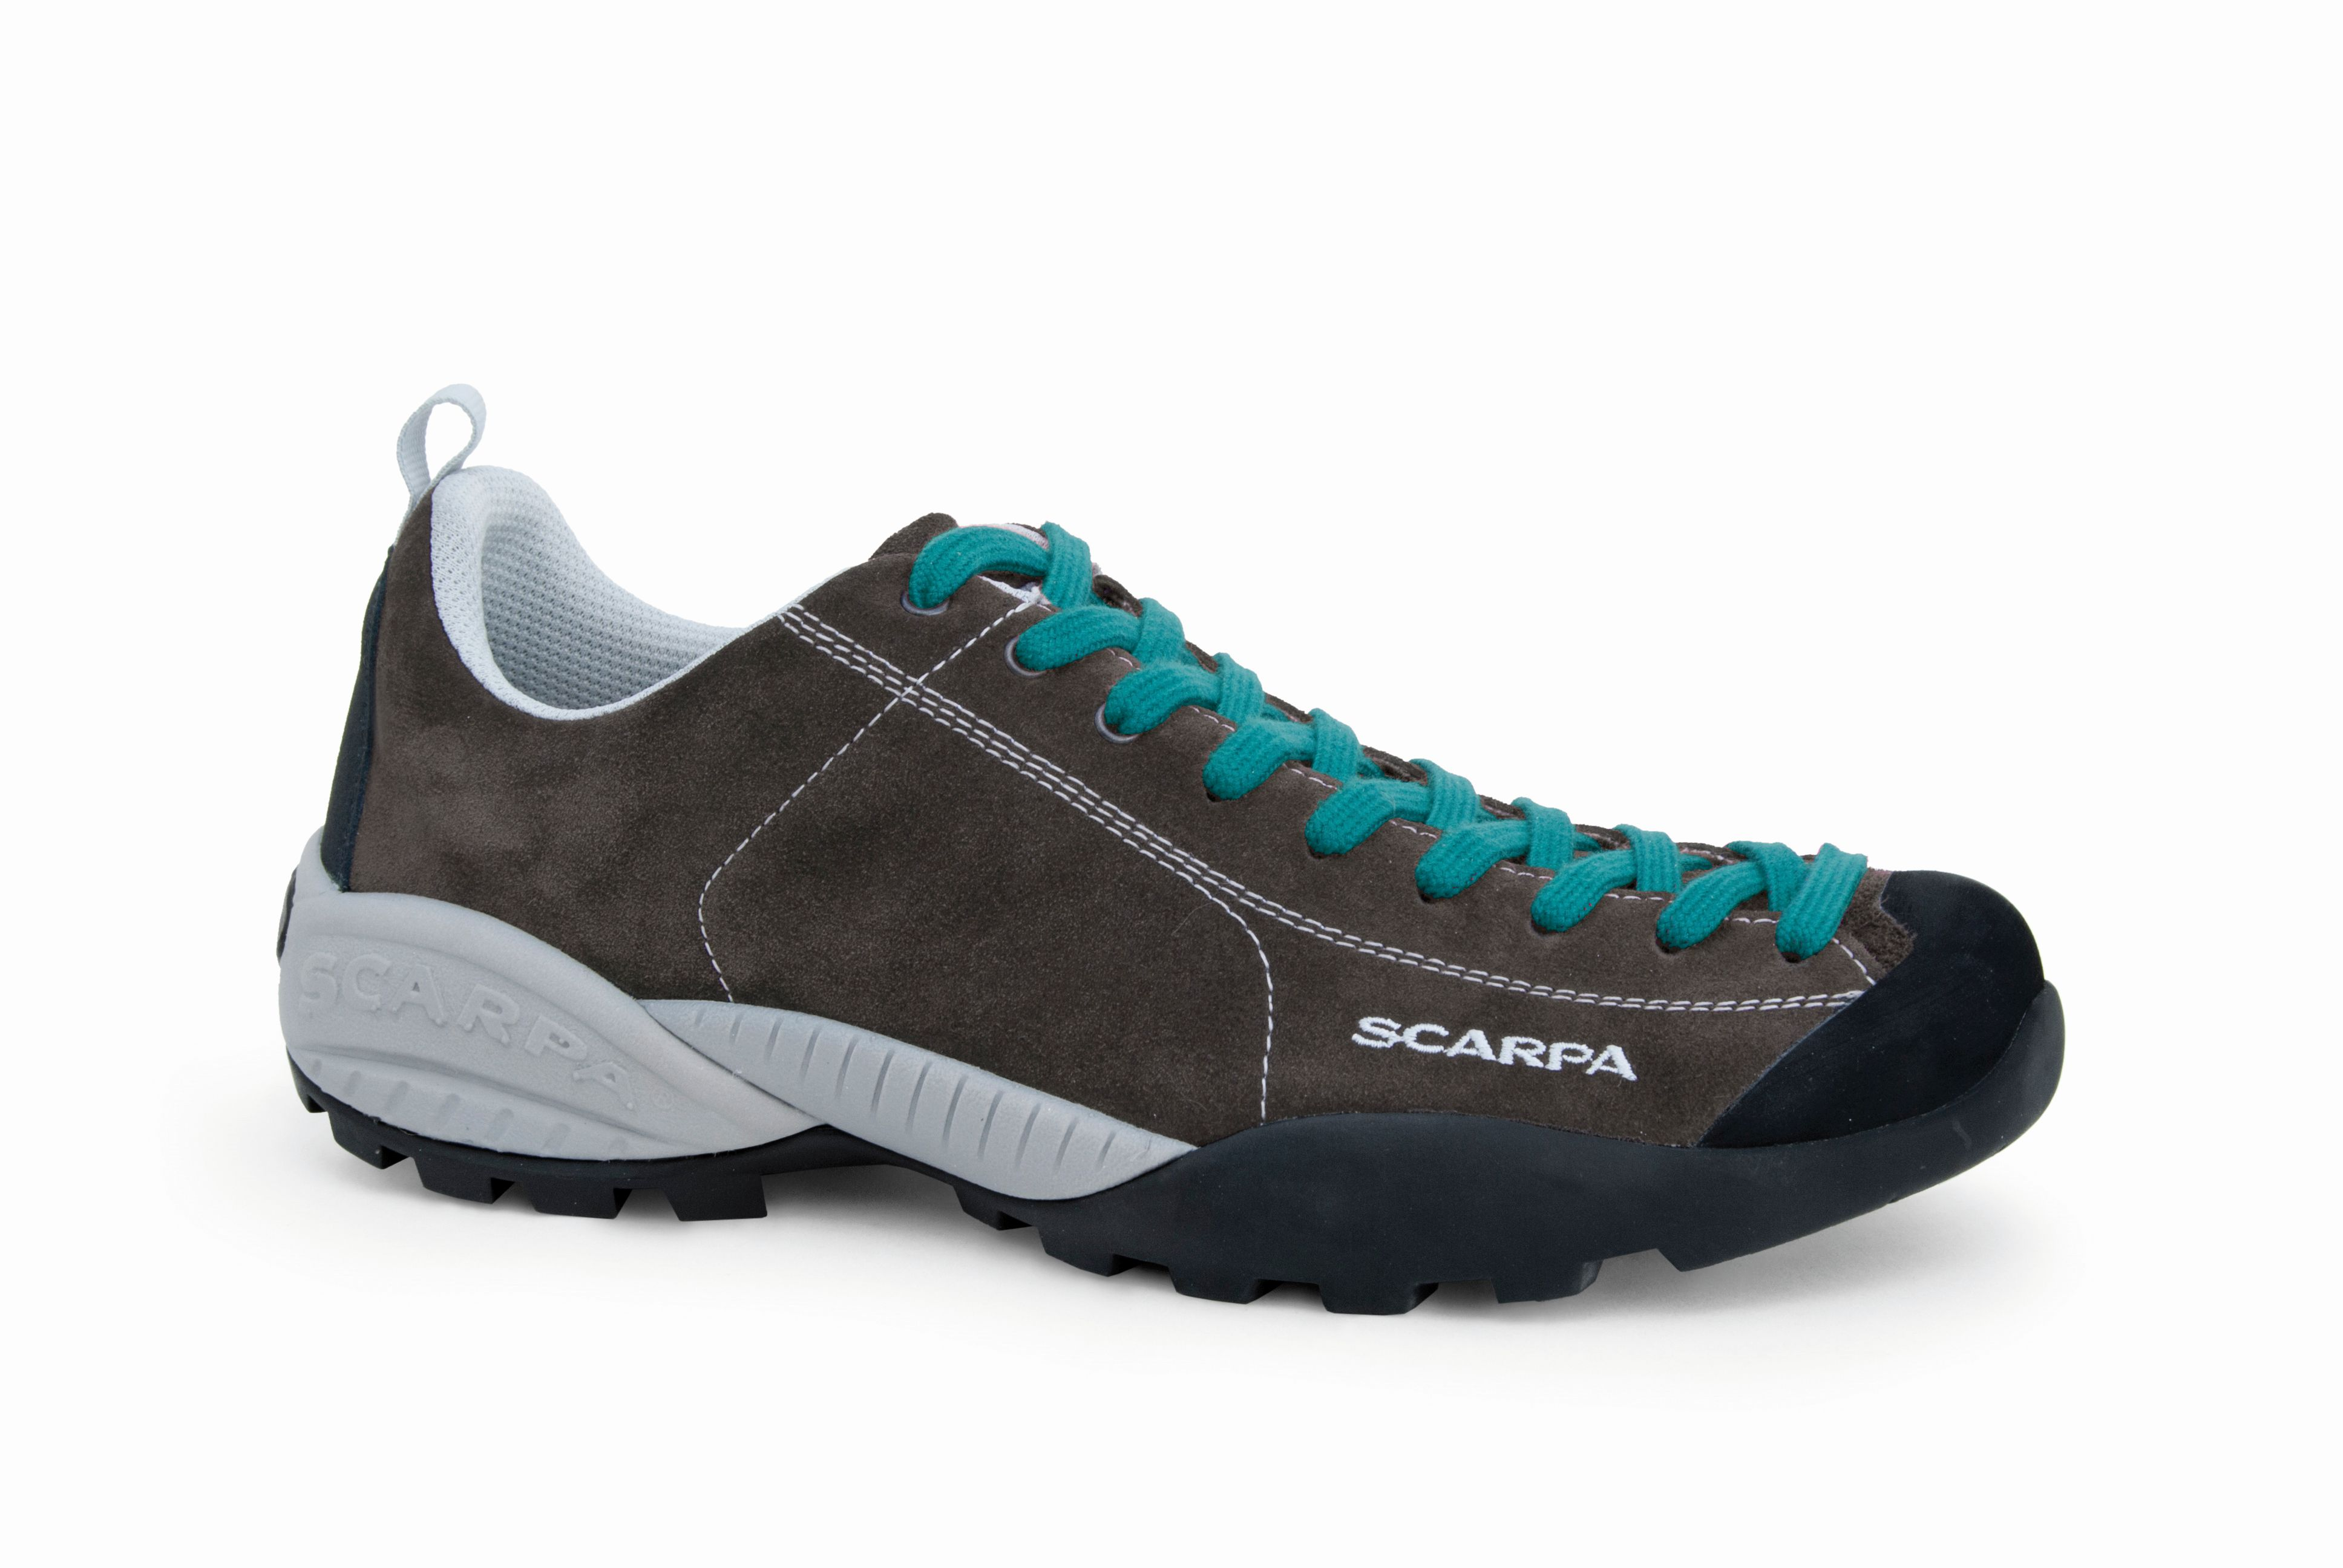 Scarpa Mojito Lt Charcoal/Lake blue-30